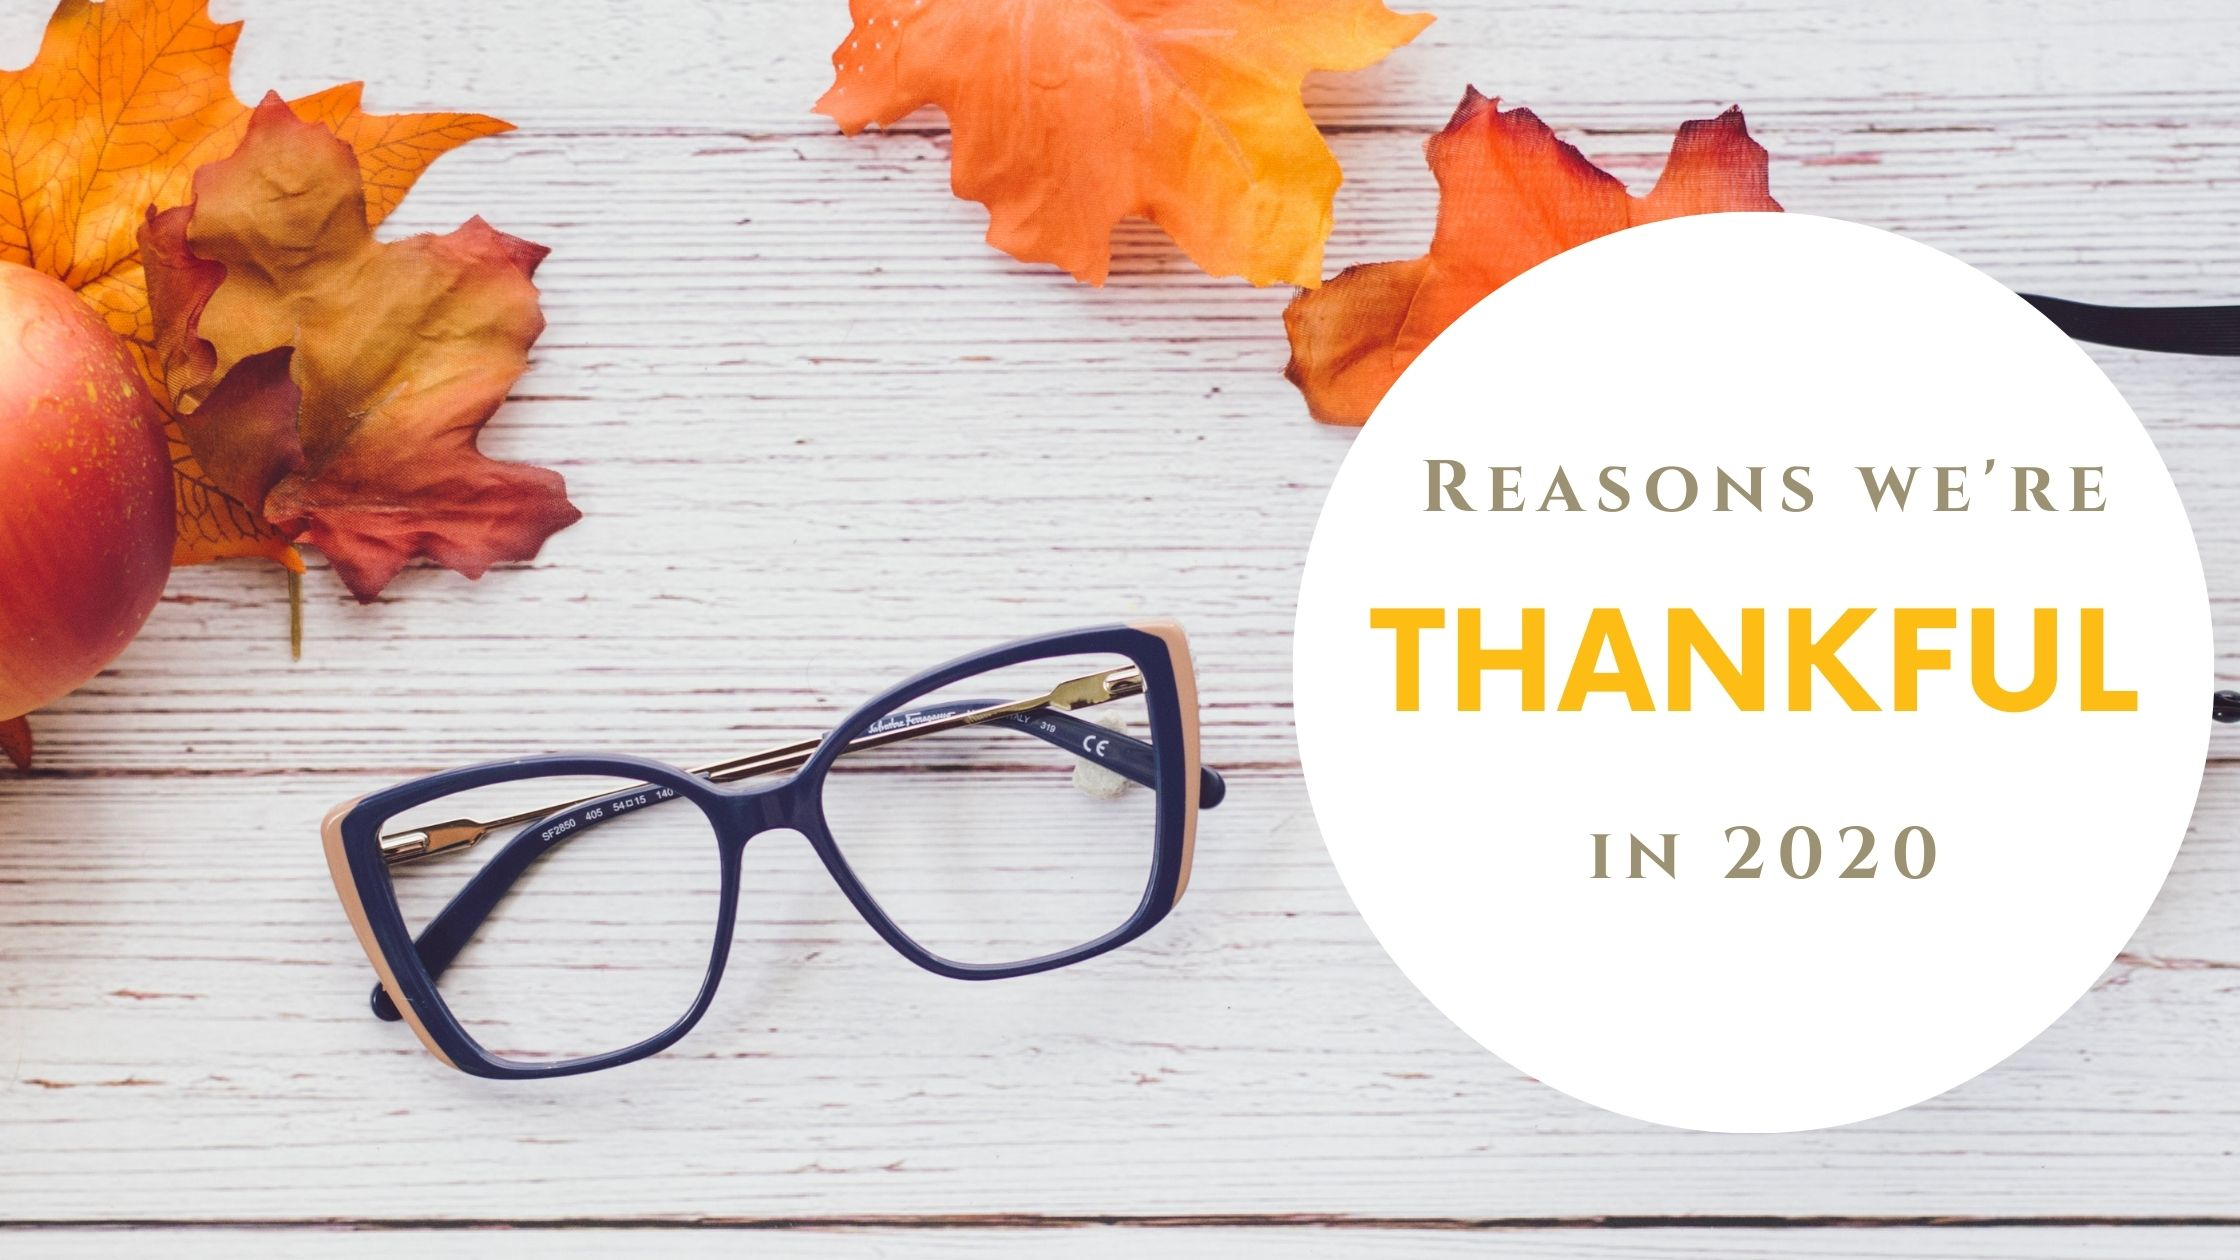 Reasons We're Thankful in 2020